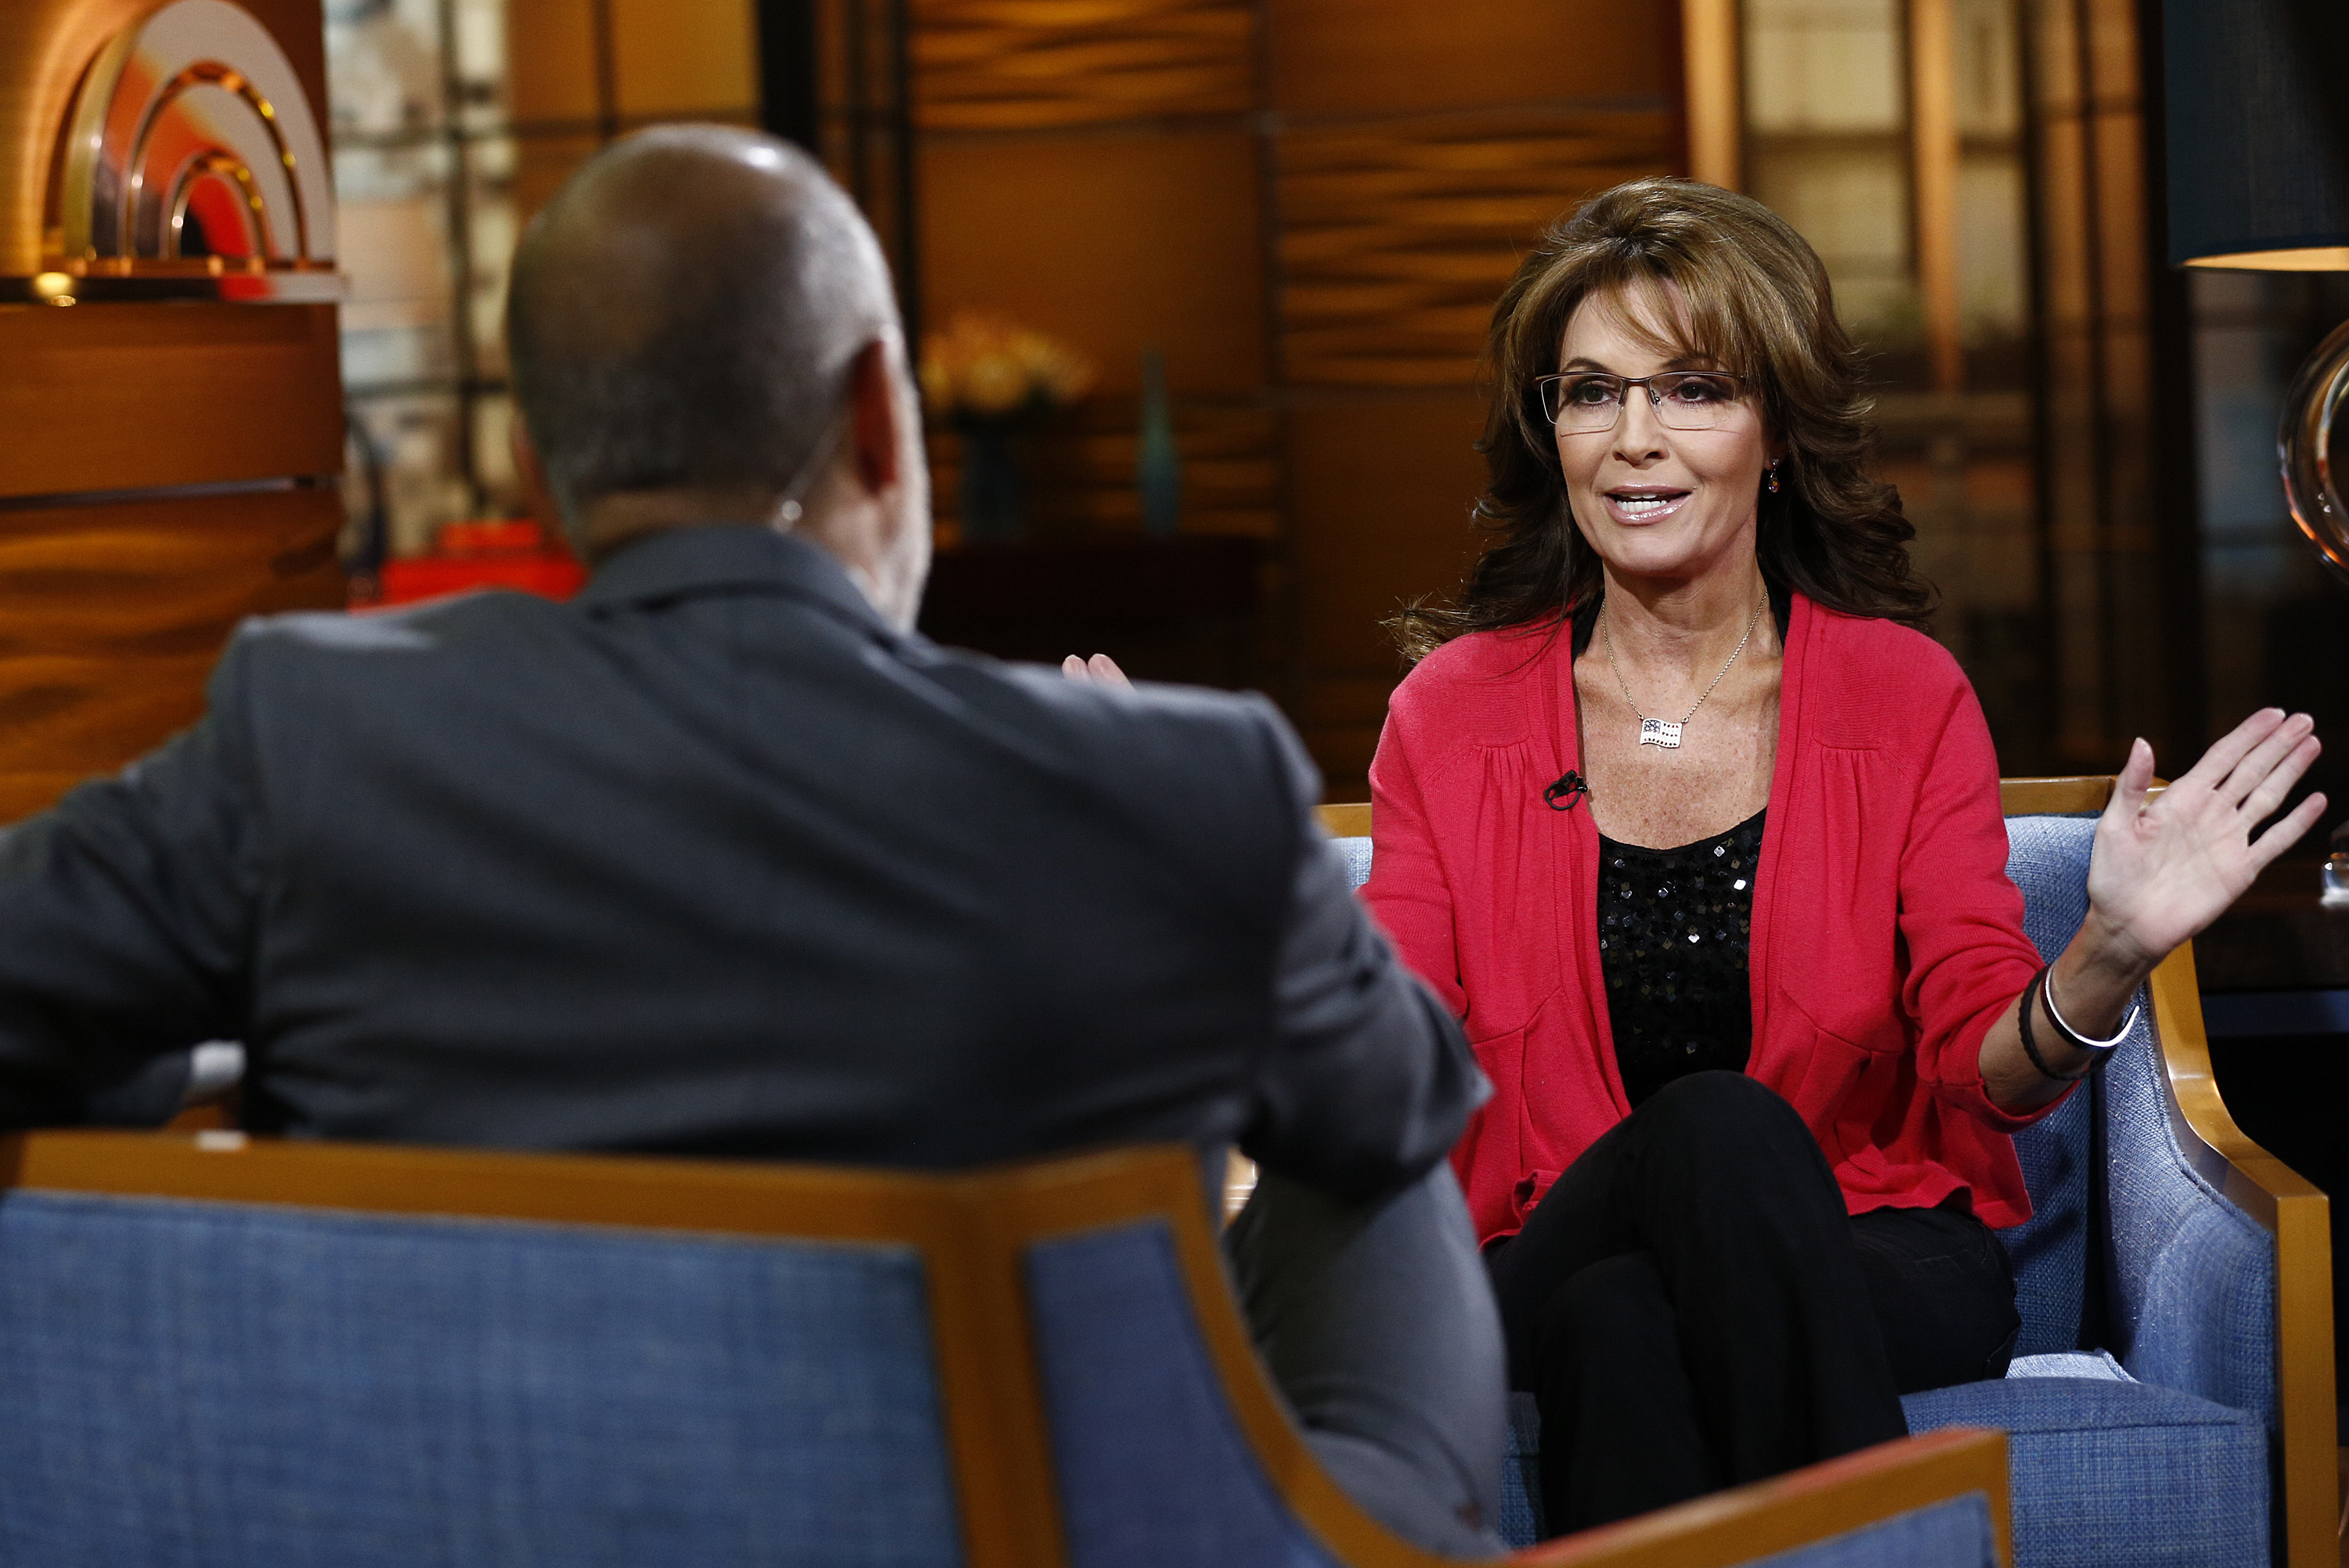 palin lauer today show